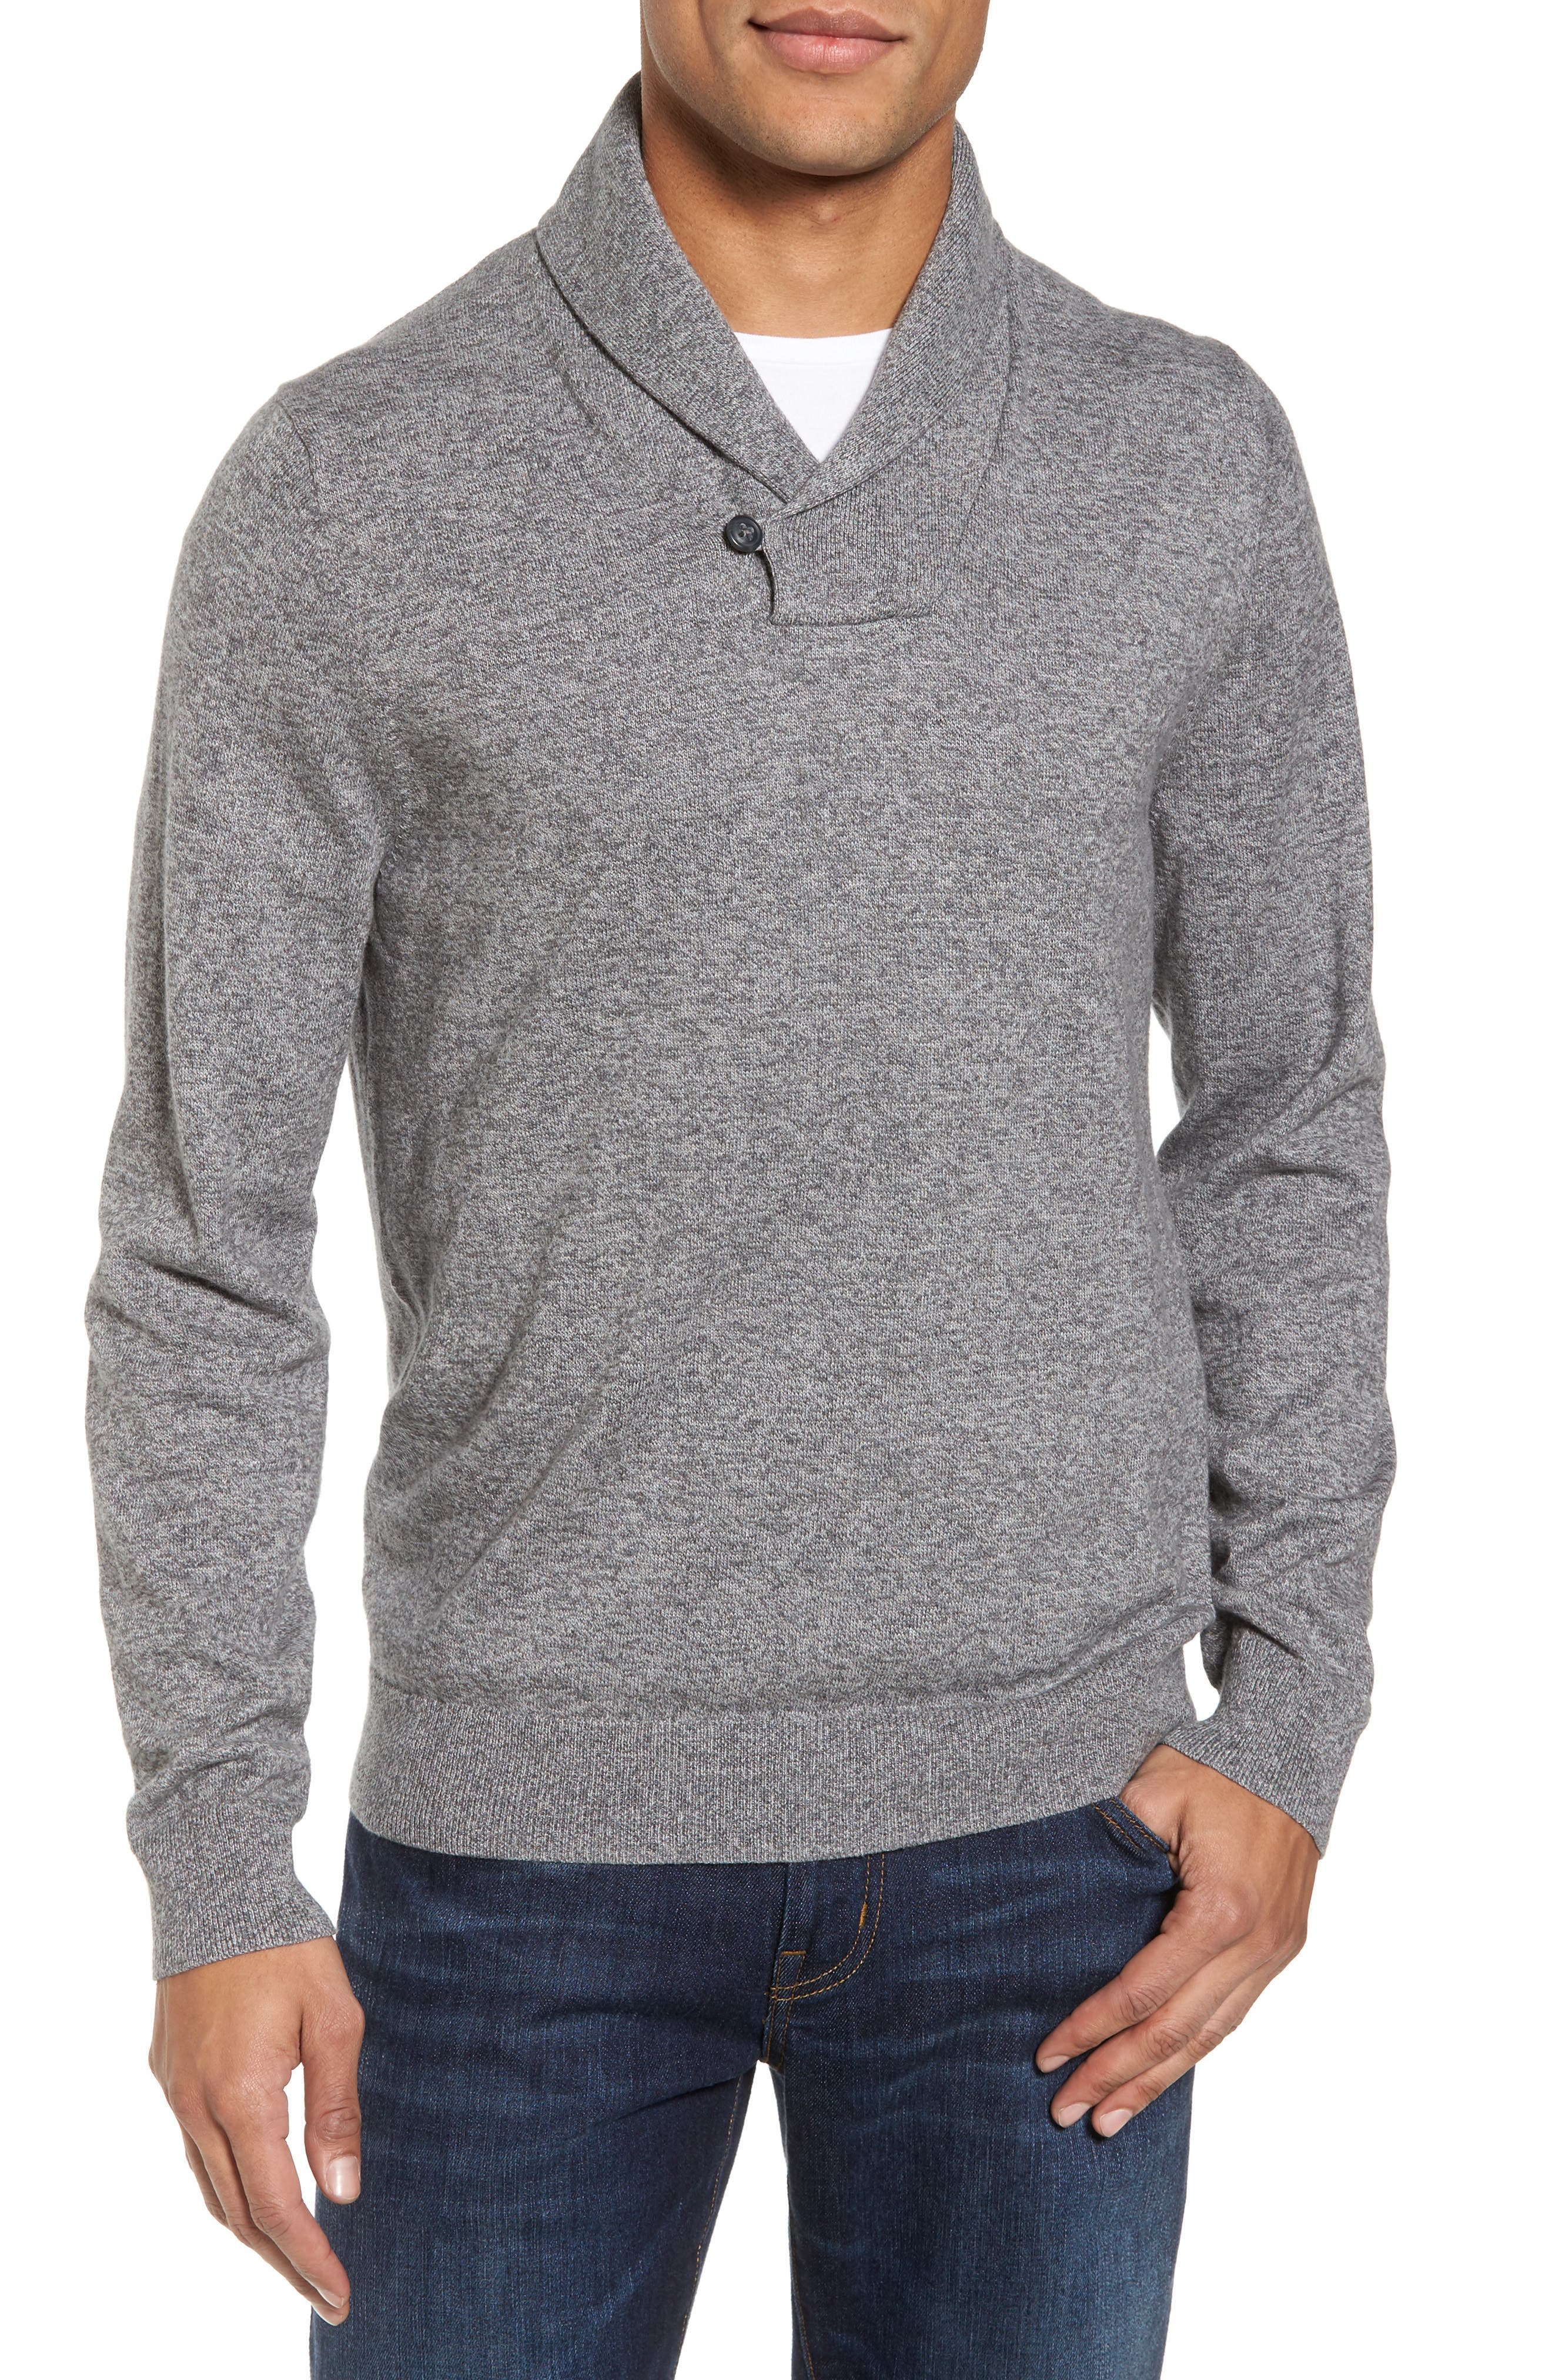 Alternate Image 1 Selected - Nordstrom Men's Shop Cotton & Cashmere Shawl Collar Sweater (Regular & Tall)